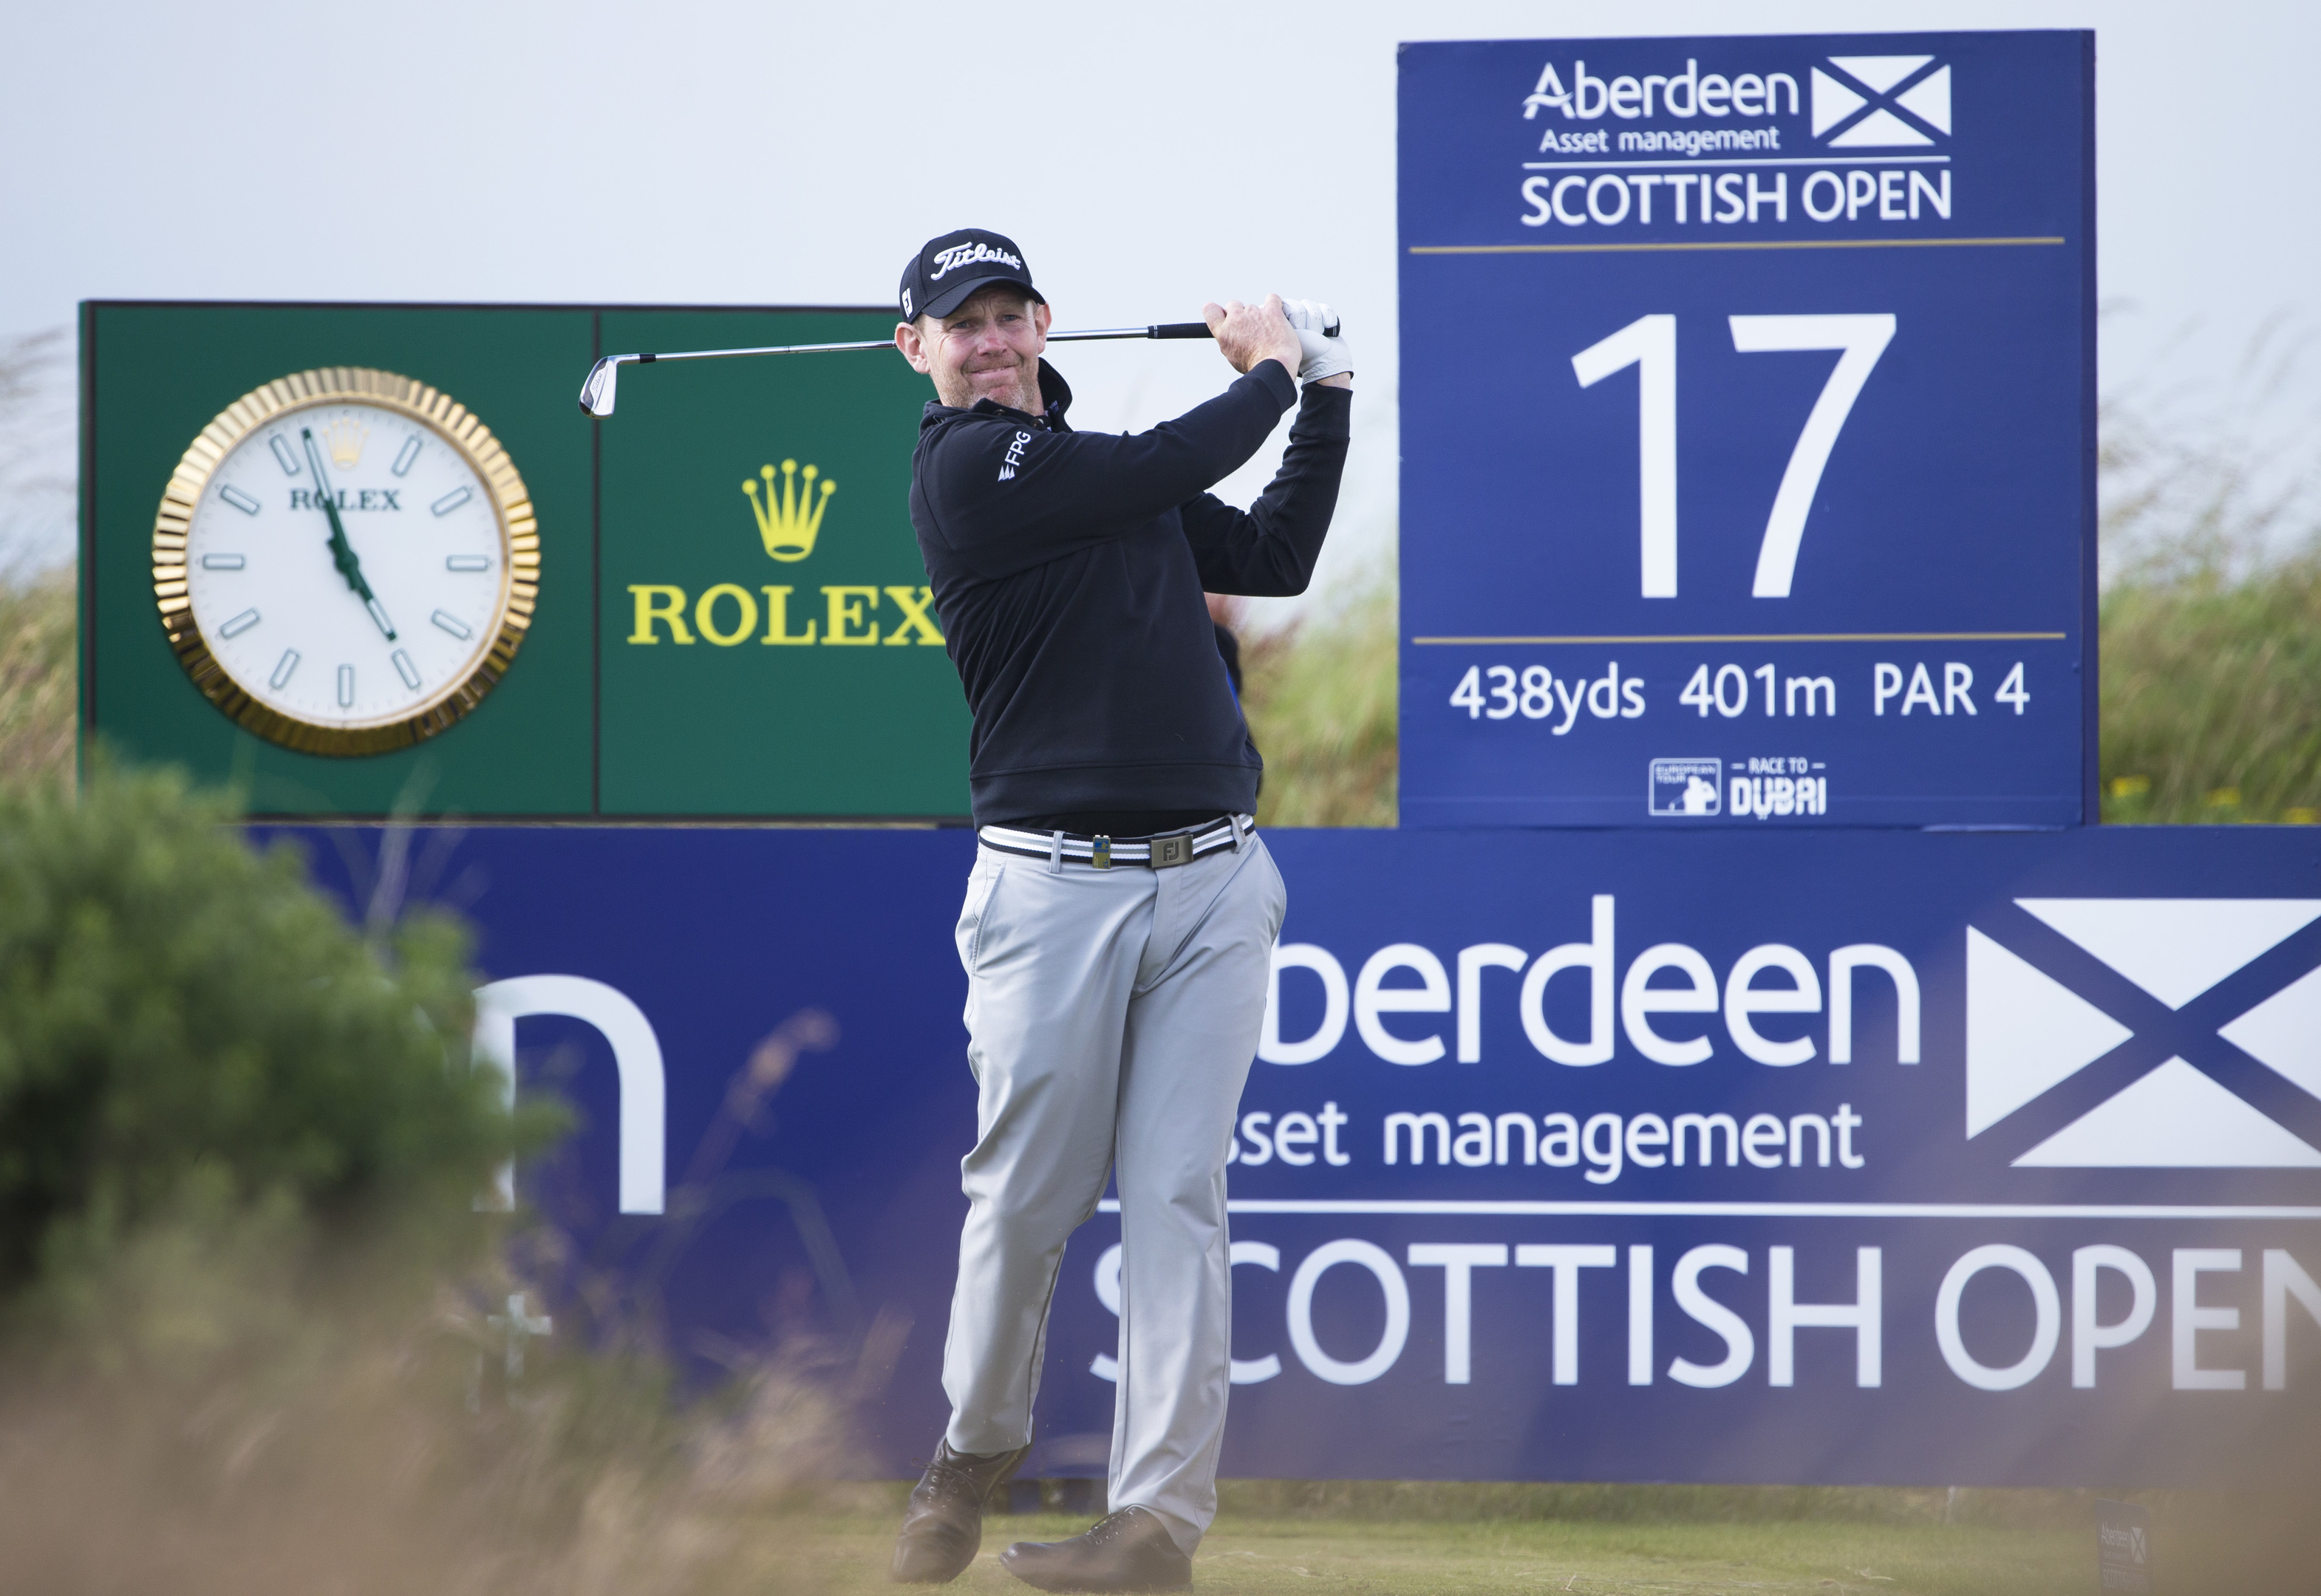 Stephen Gallacher shot a four-under 68 to be three of the lead at Dundonald.